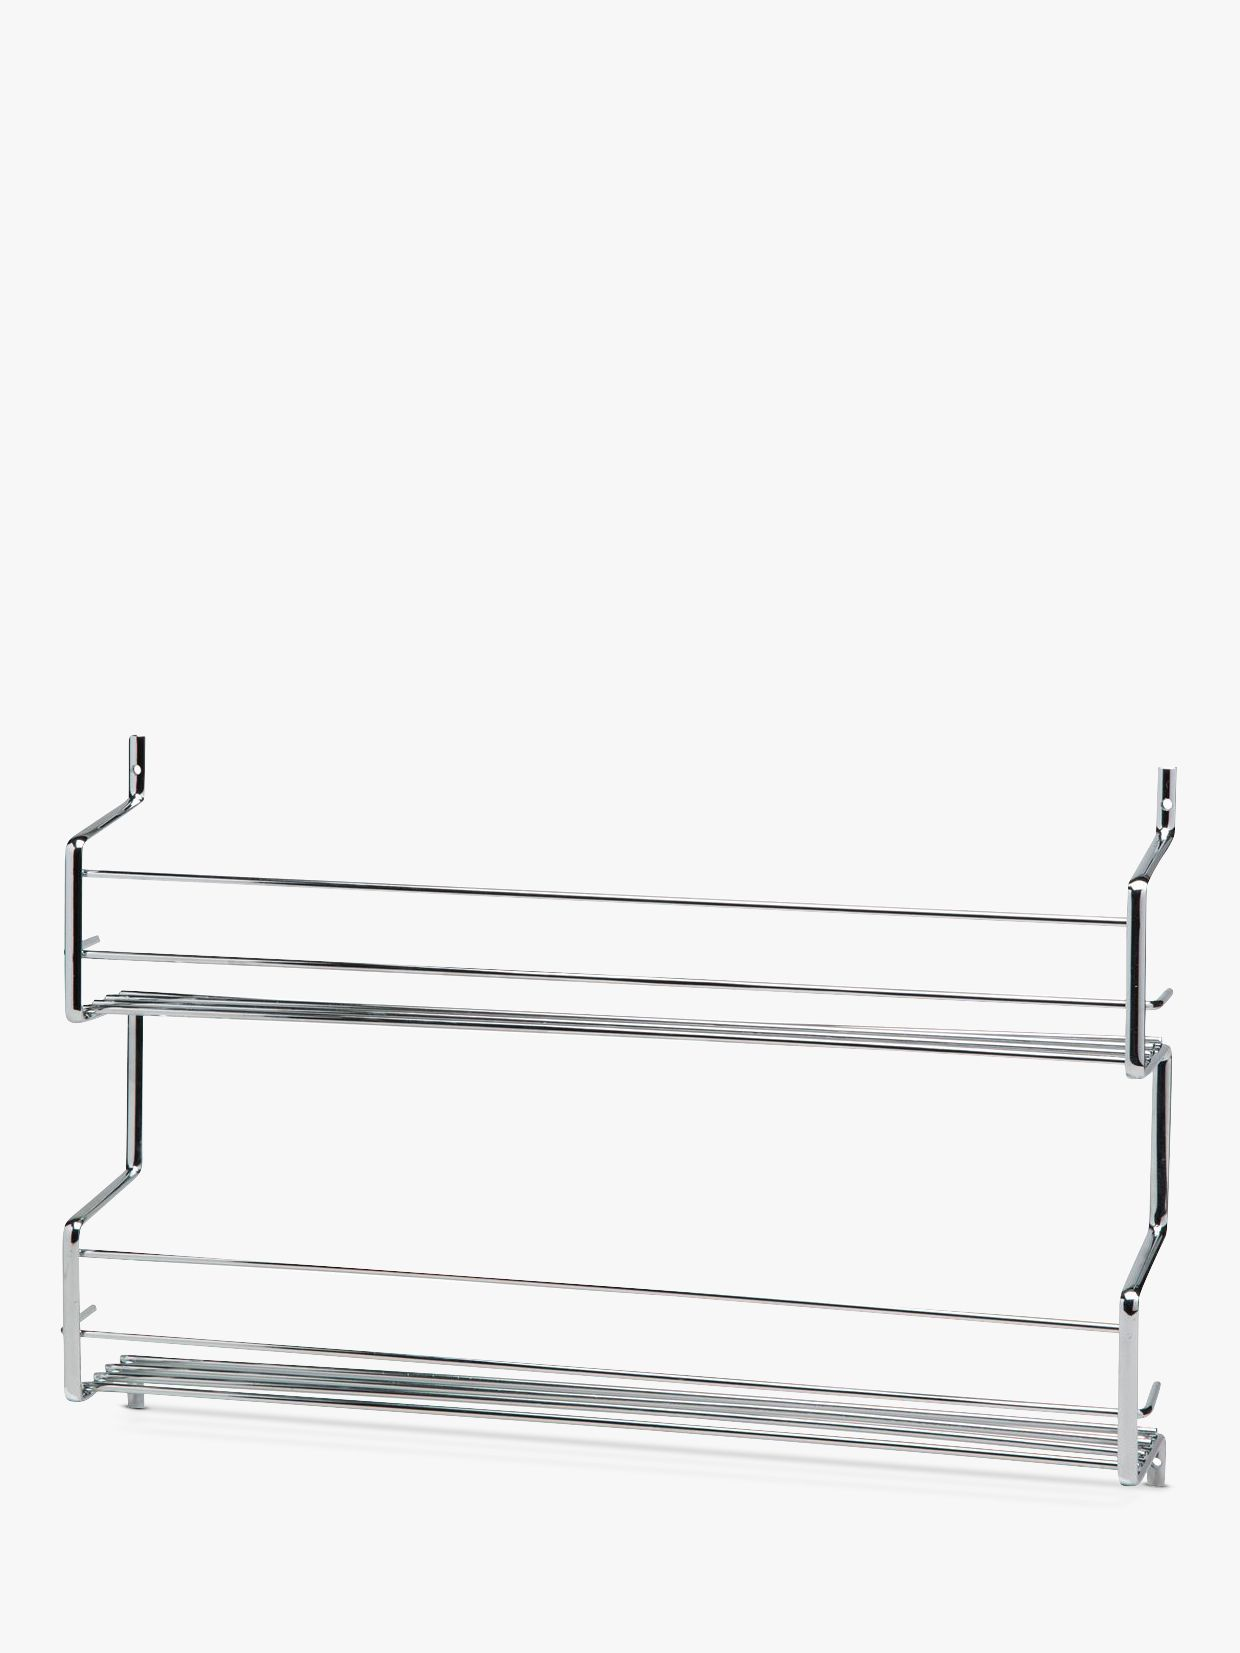 Hahn Wall Mounted Steel Spice Rack With 2 Shelves